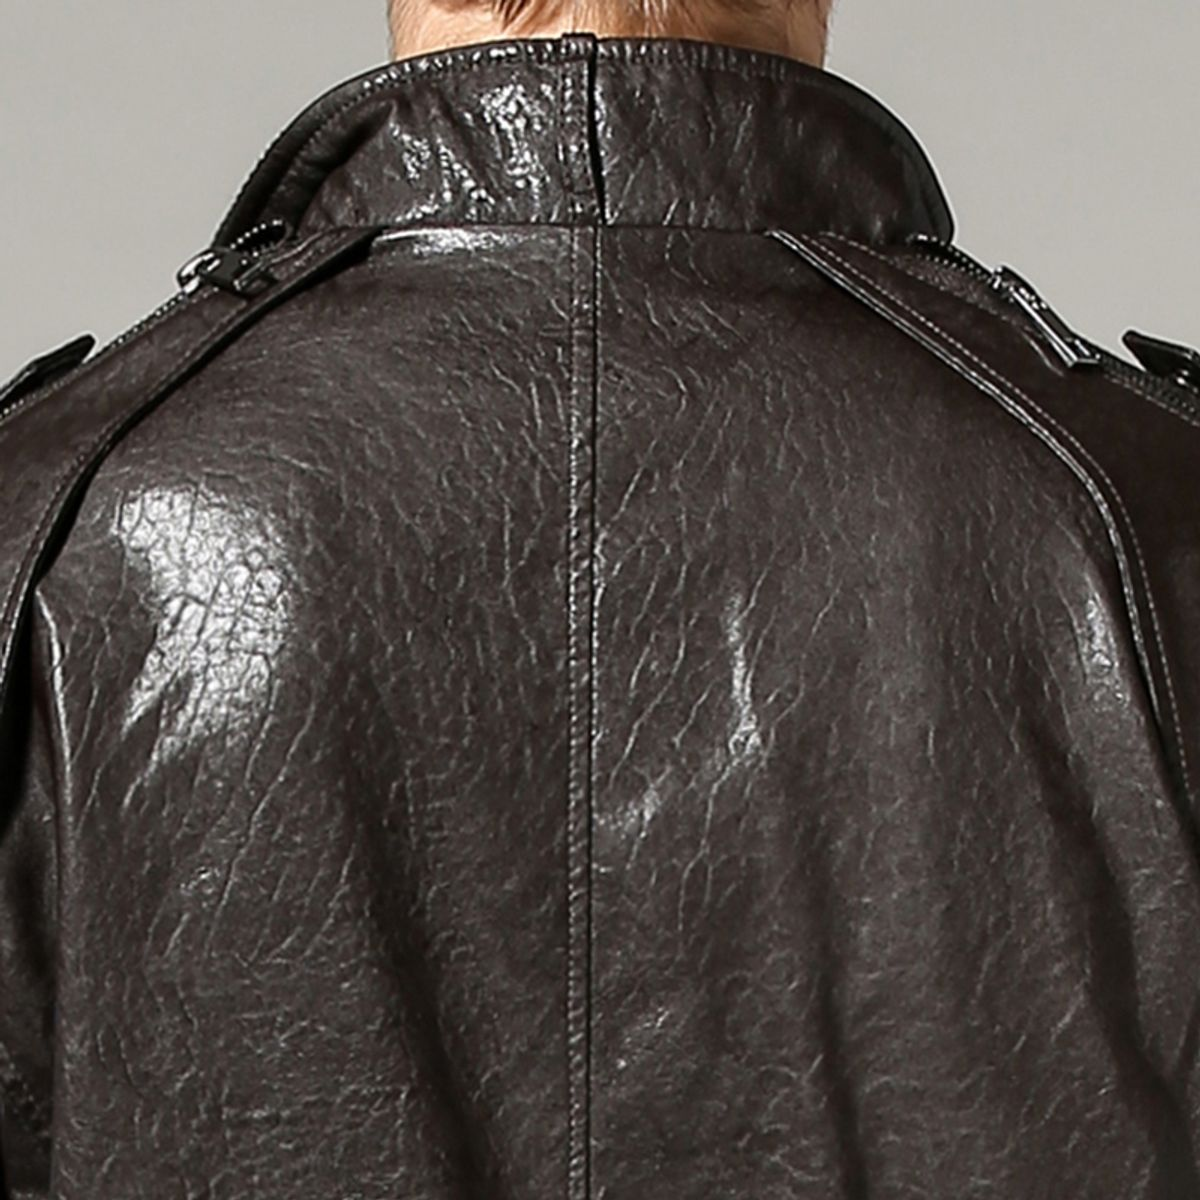 T26 - Italiano TUCCI Vintage Slim Fit Padding Style Designer Mens Pure Leather Jacket